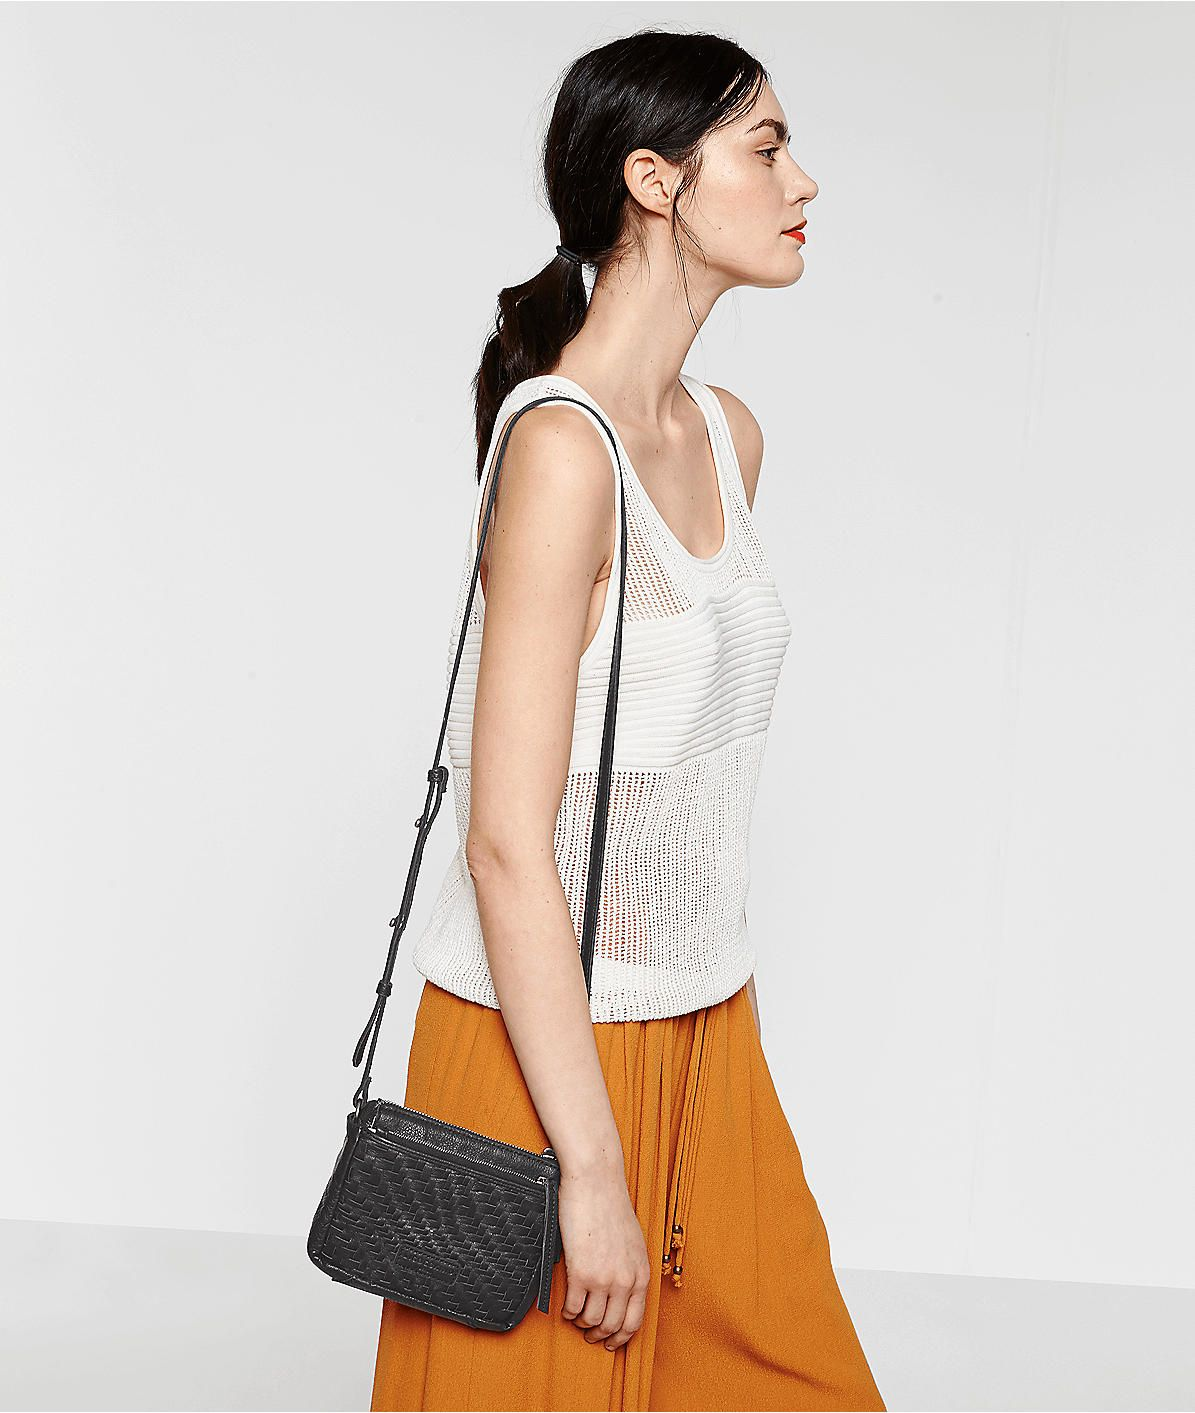 Katima crossbody bag from liebeskind some stripes and